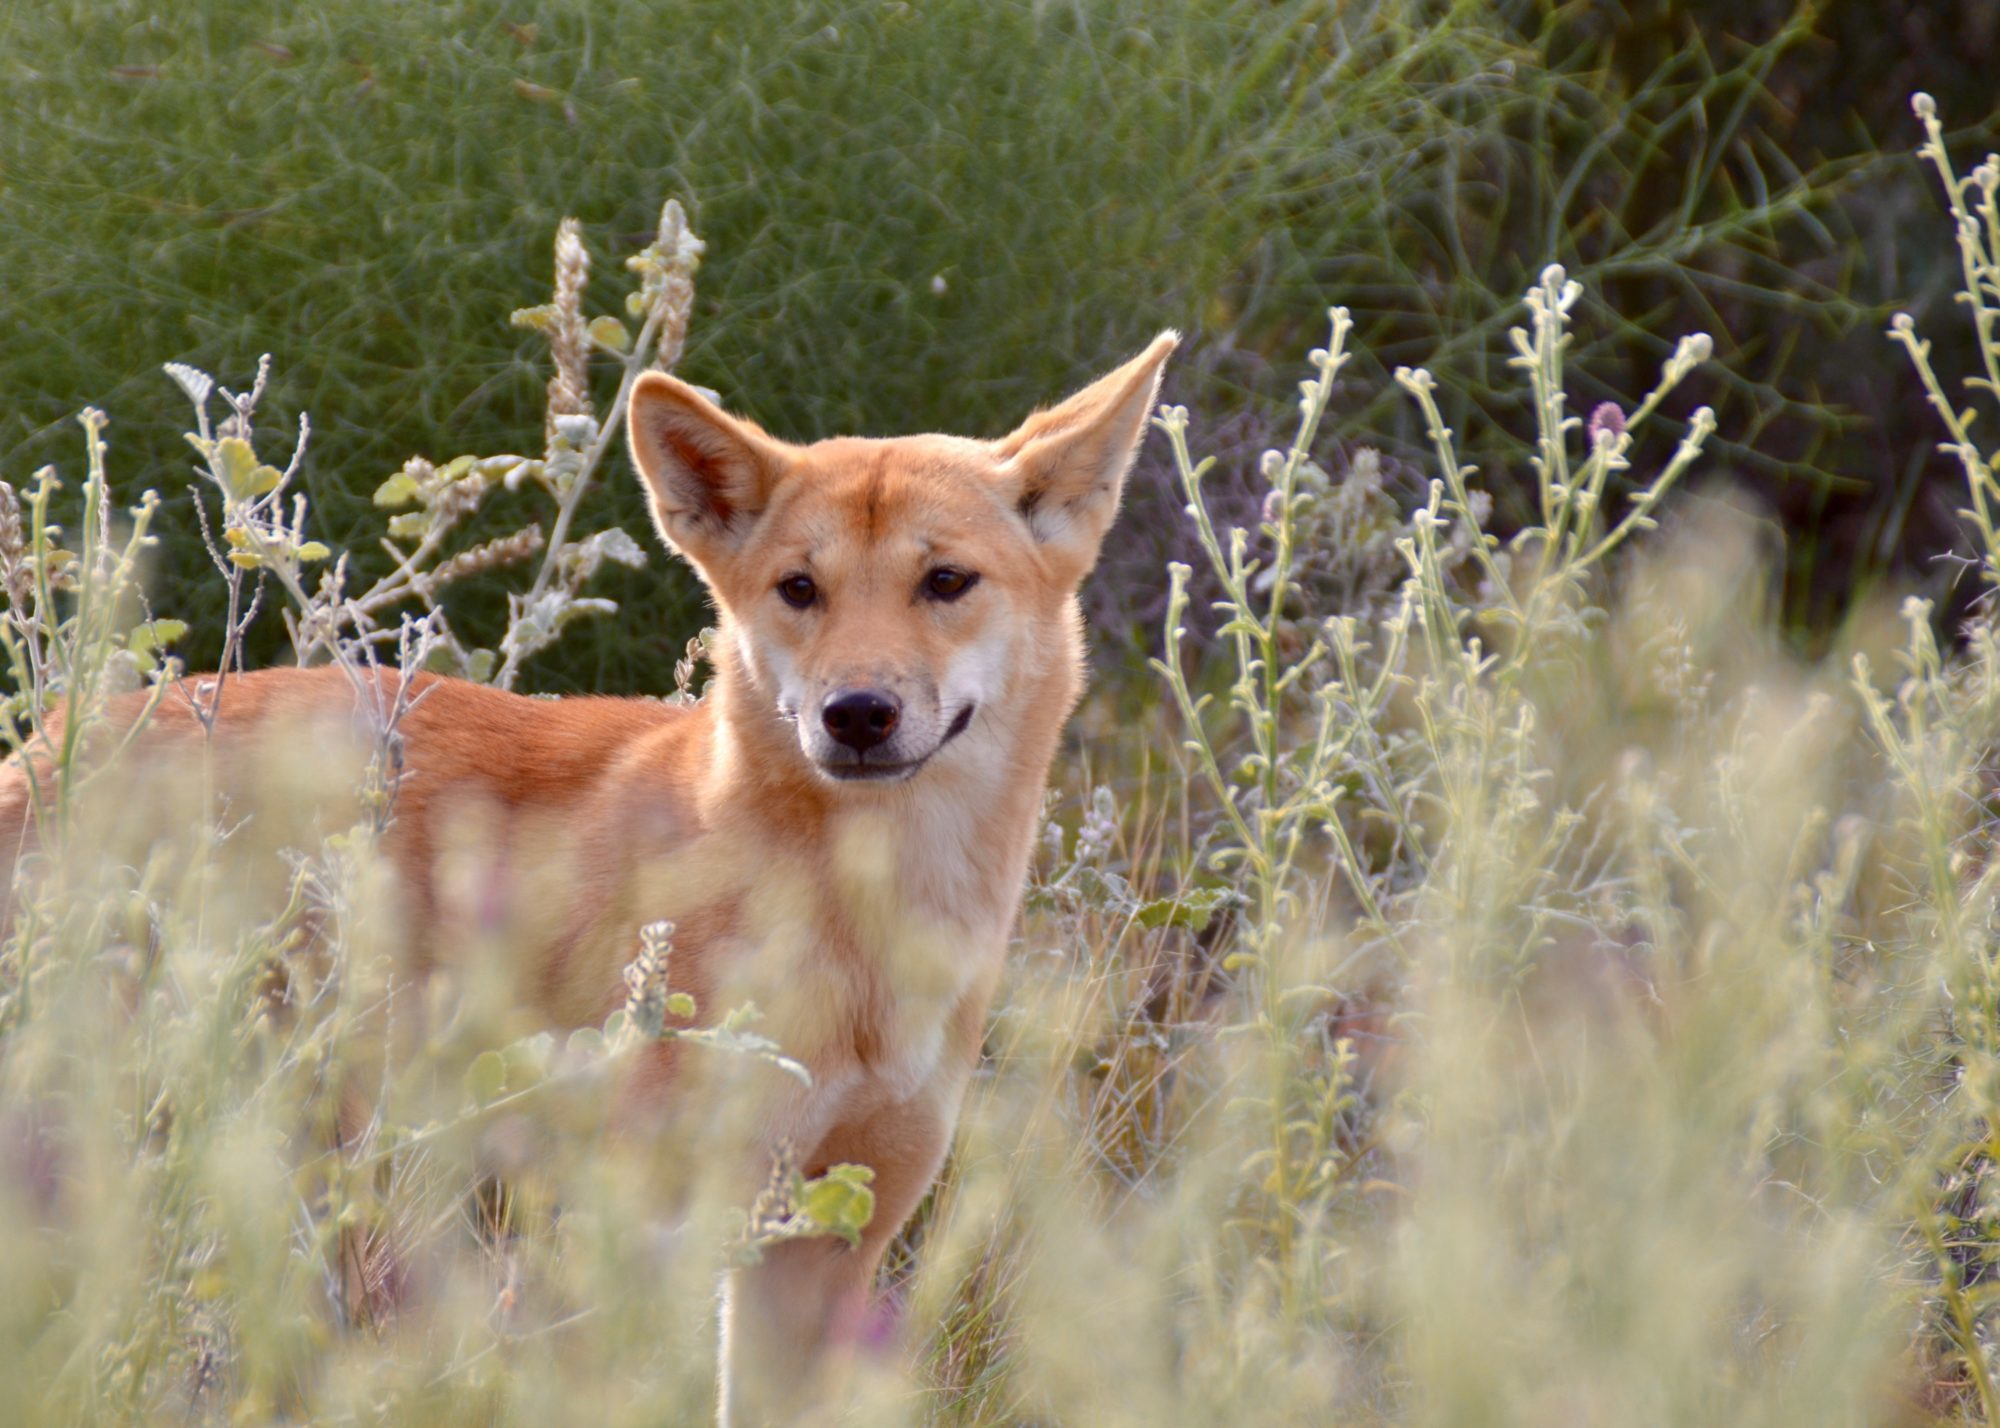 The Outback Dingo